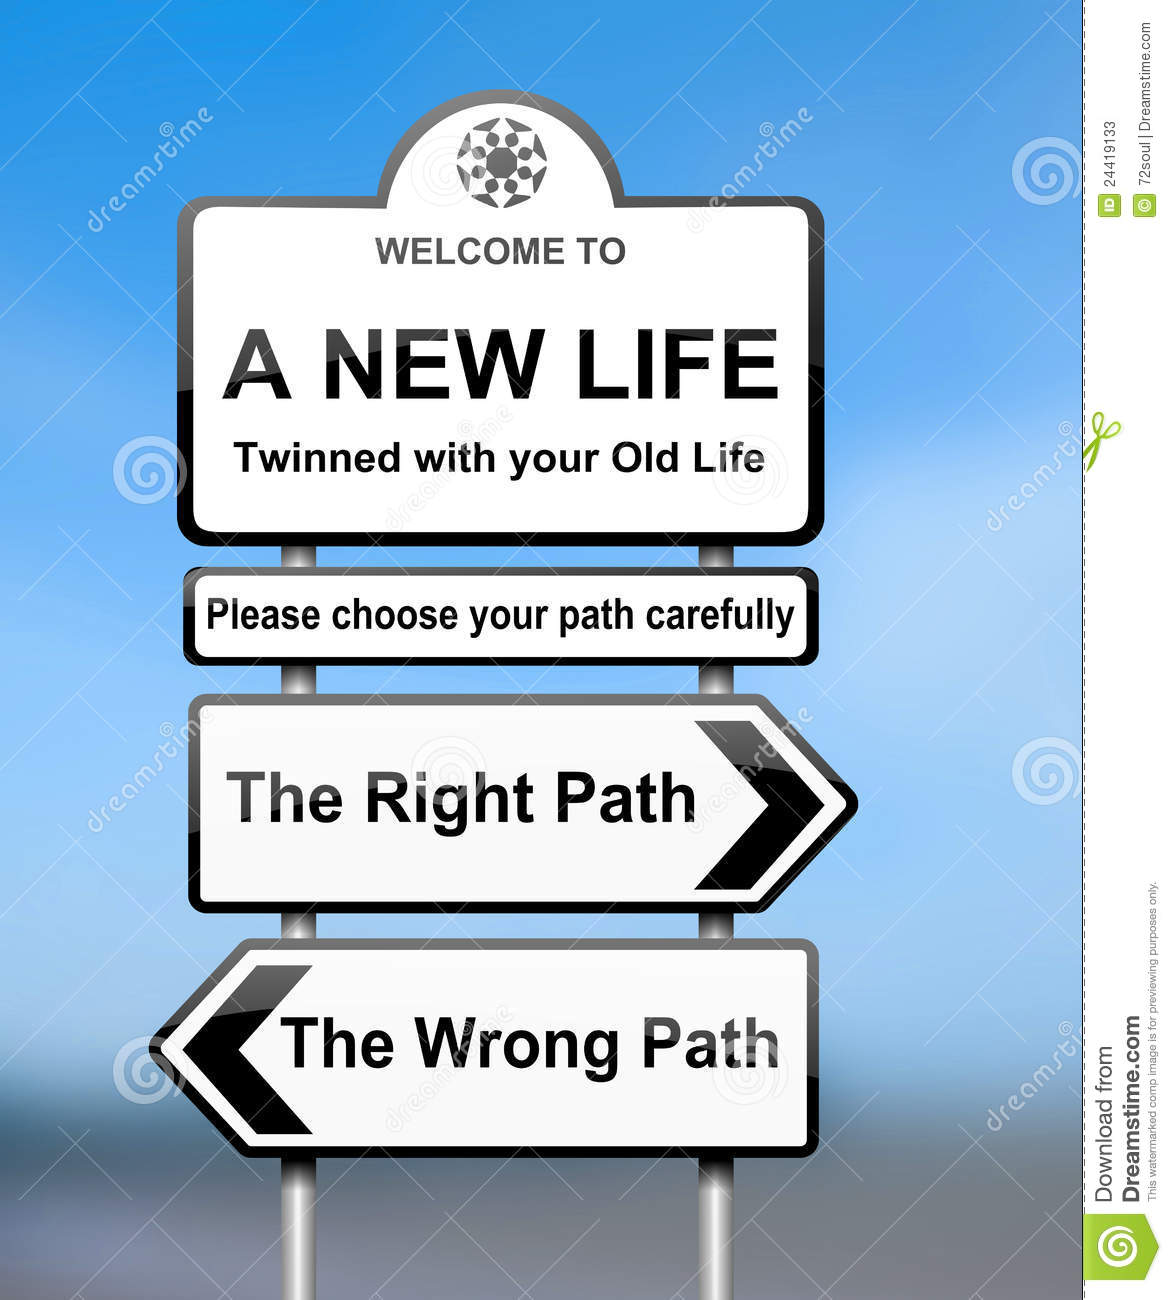 Choosing The Right Path. Stock Photos  Image: 24419133